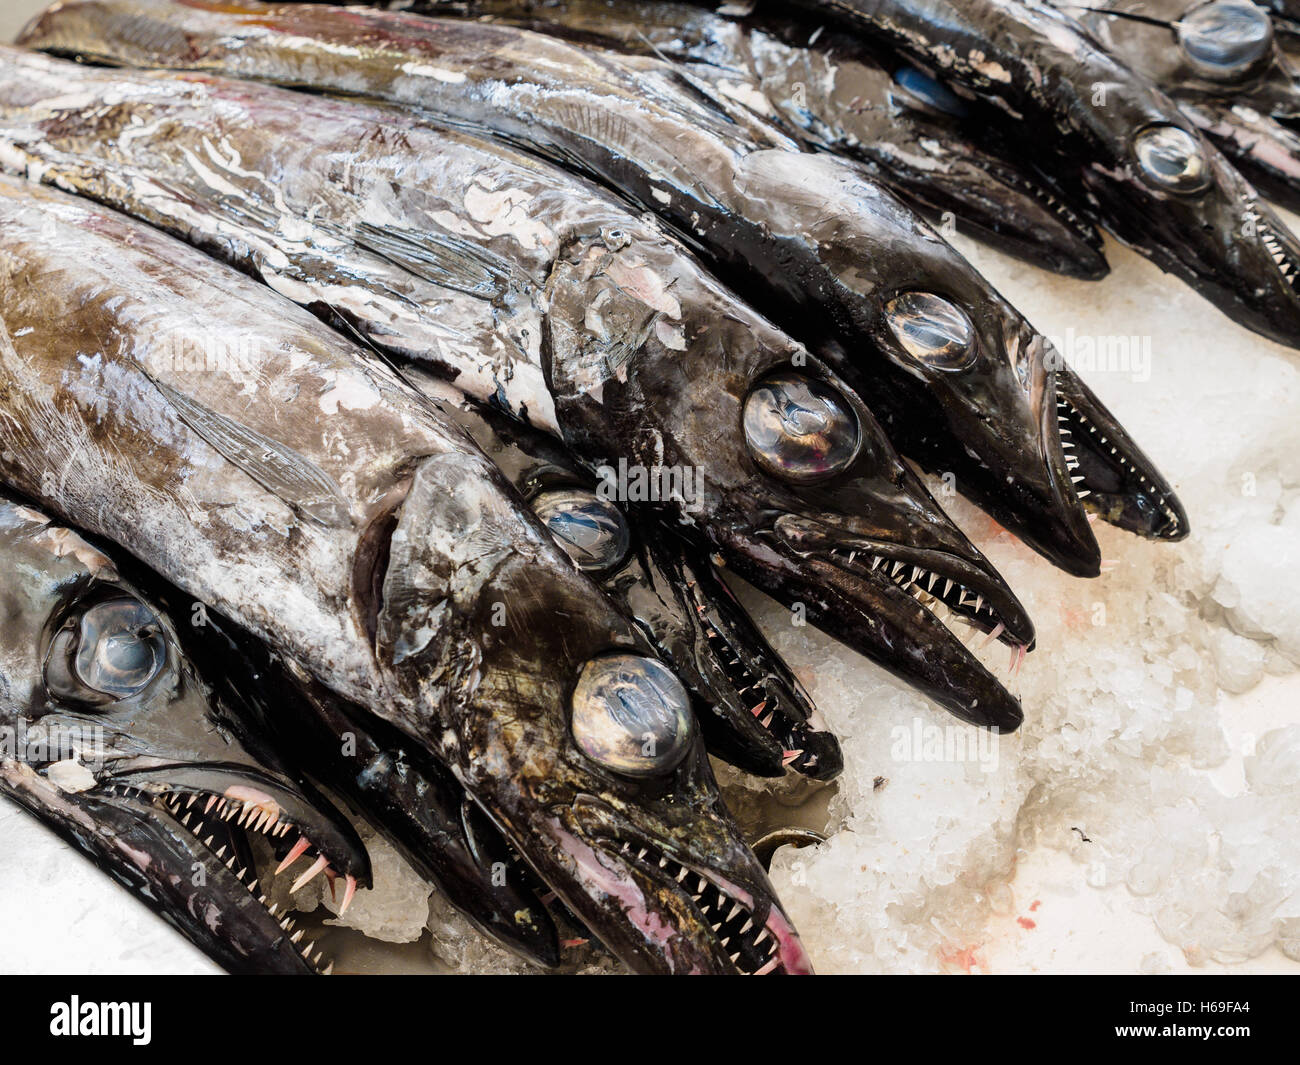 Black scabbardfish is for sale in the Funchal market hall on the Portuguese island of Madeira - Stock Image